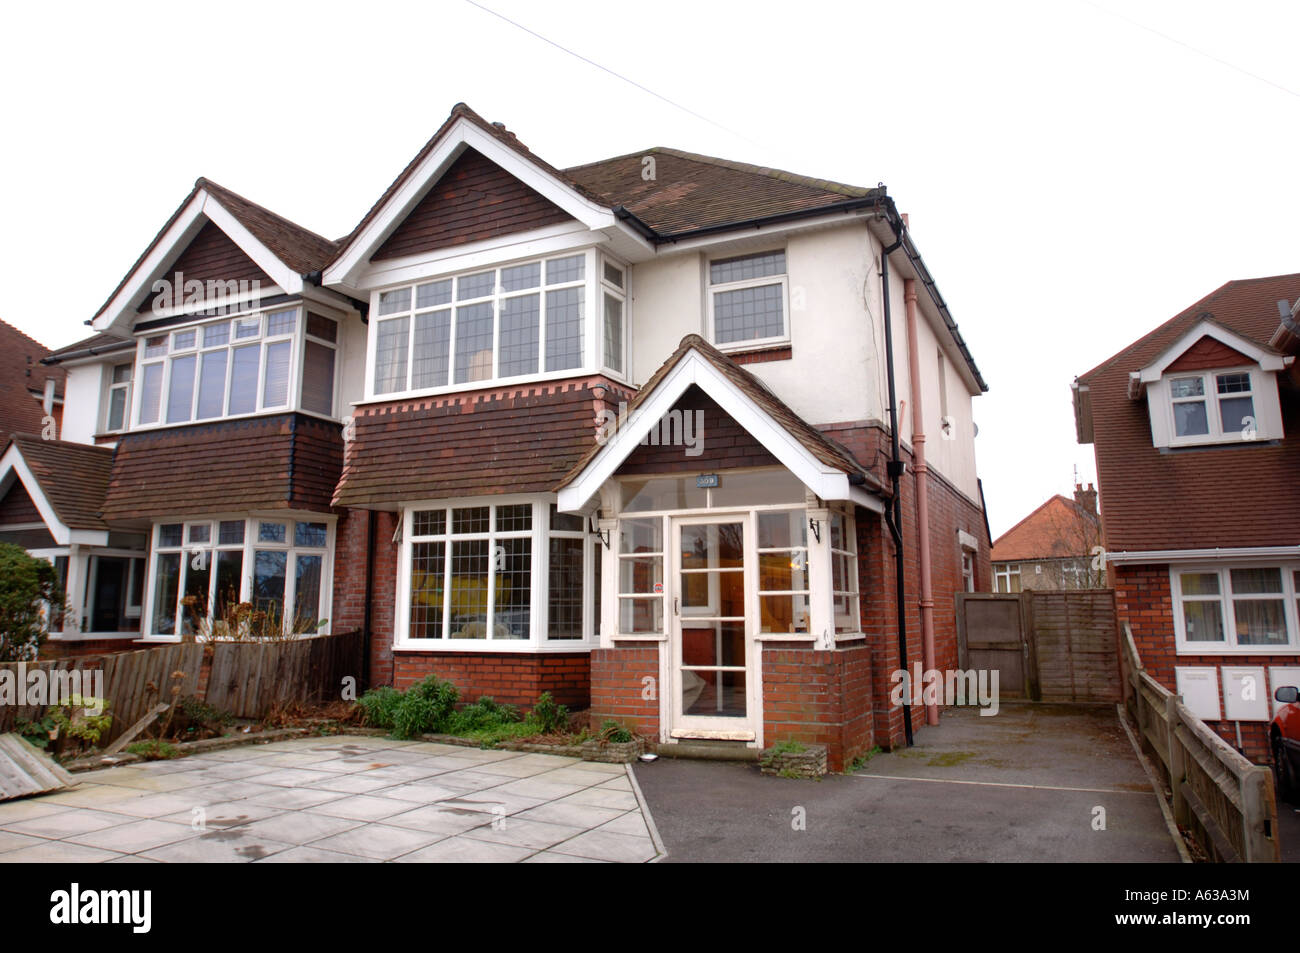 A TYPICAL SEMI DETACHED HOUSE IN A SUBURBAN STREET UK